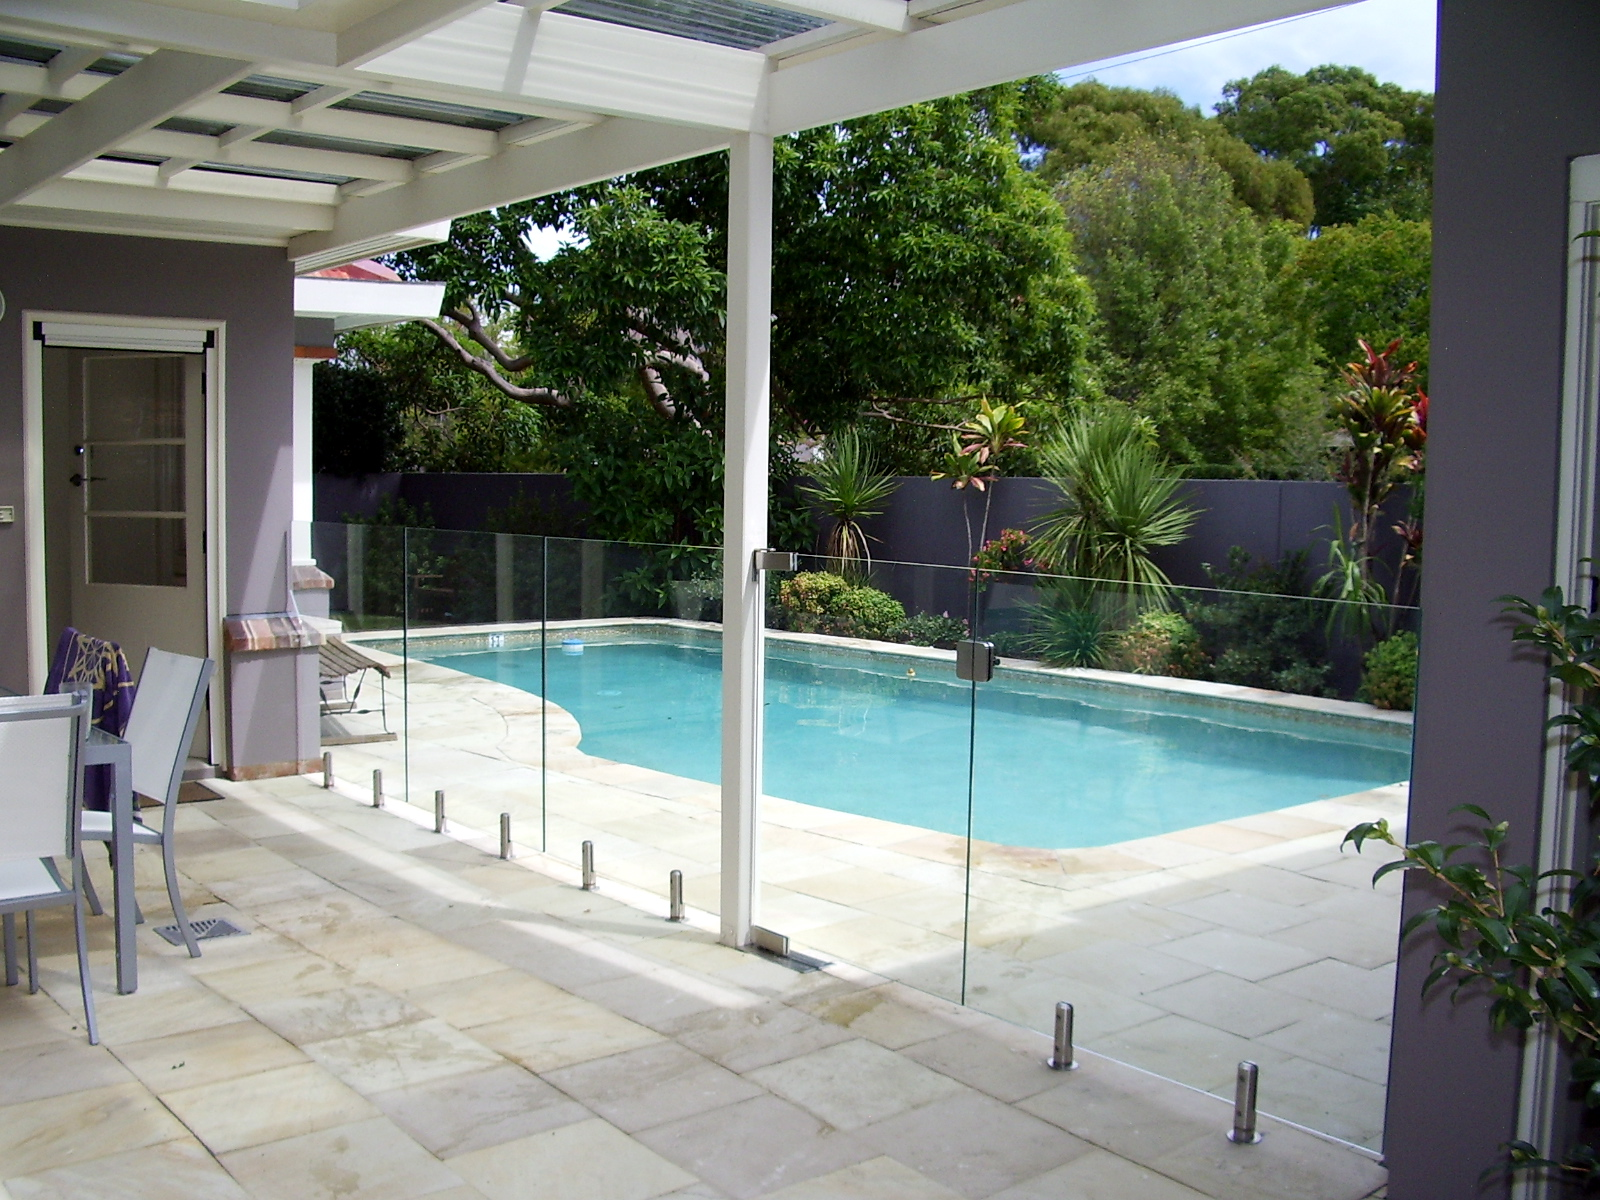 Swimming pool fencing glassfx frameless sydney newcastle central coast for Swimming pools central coast nsw